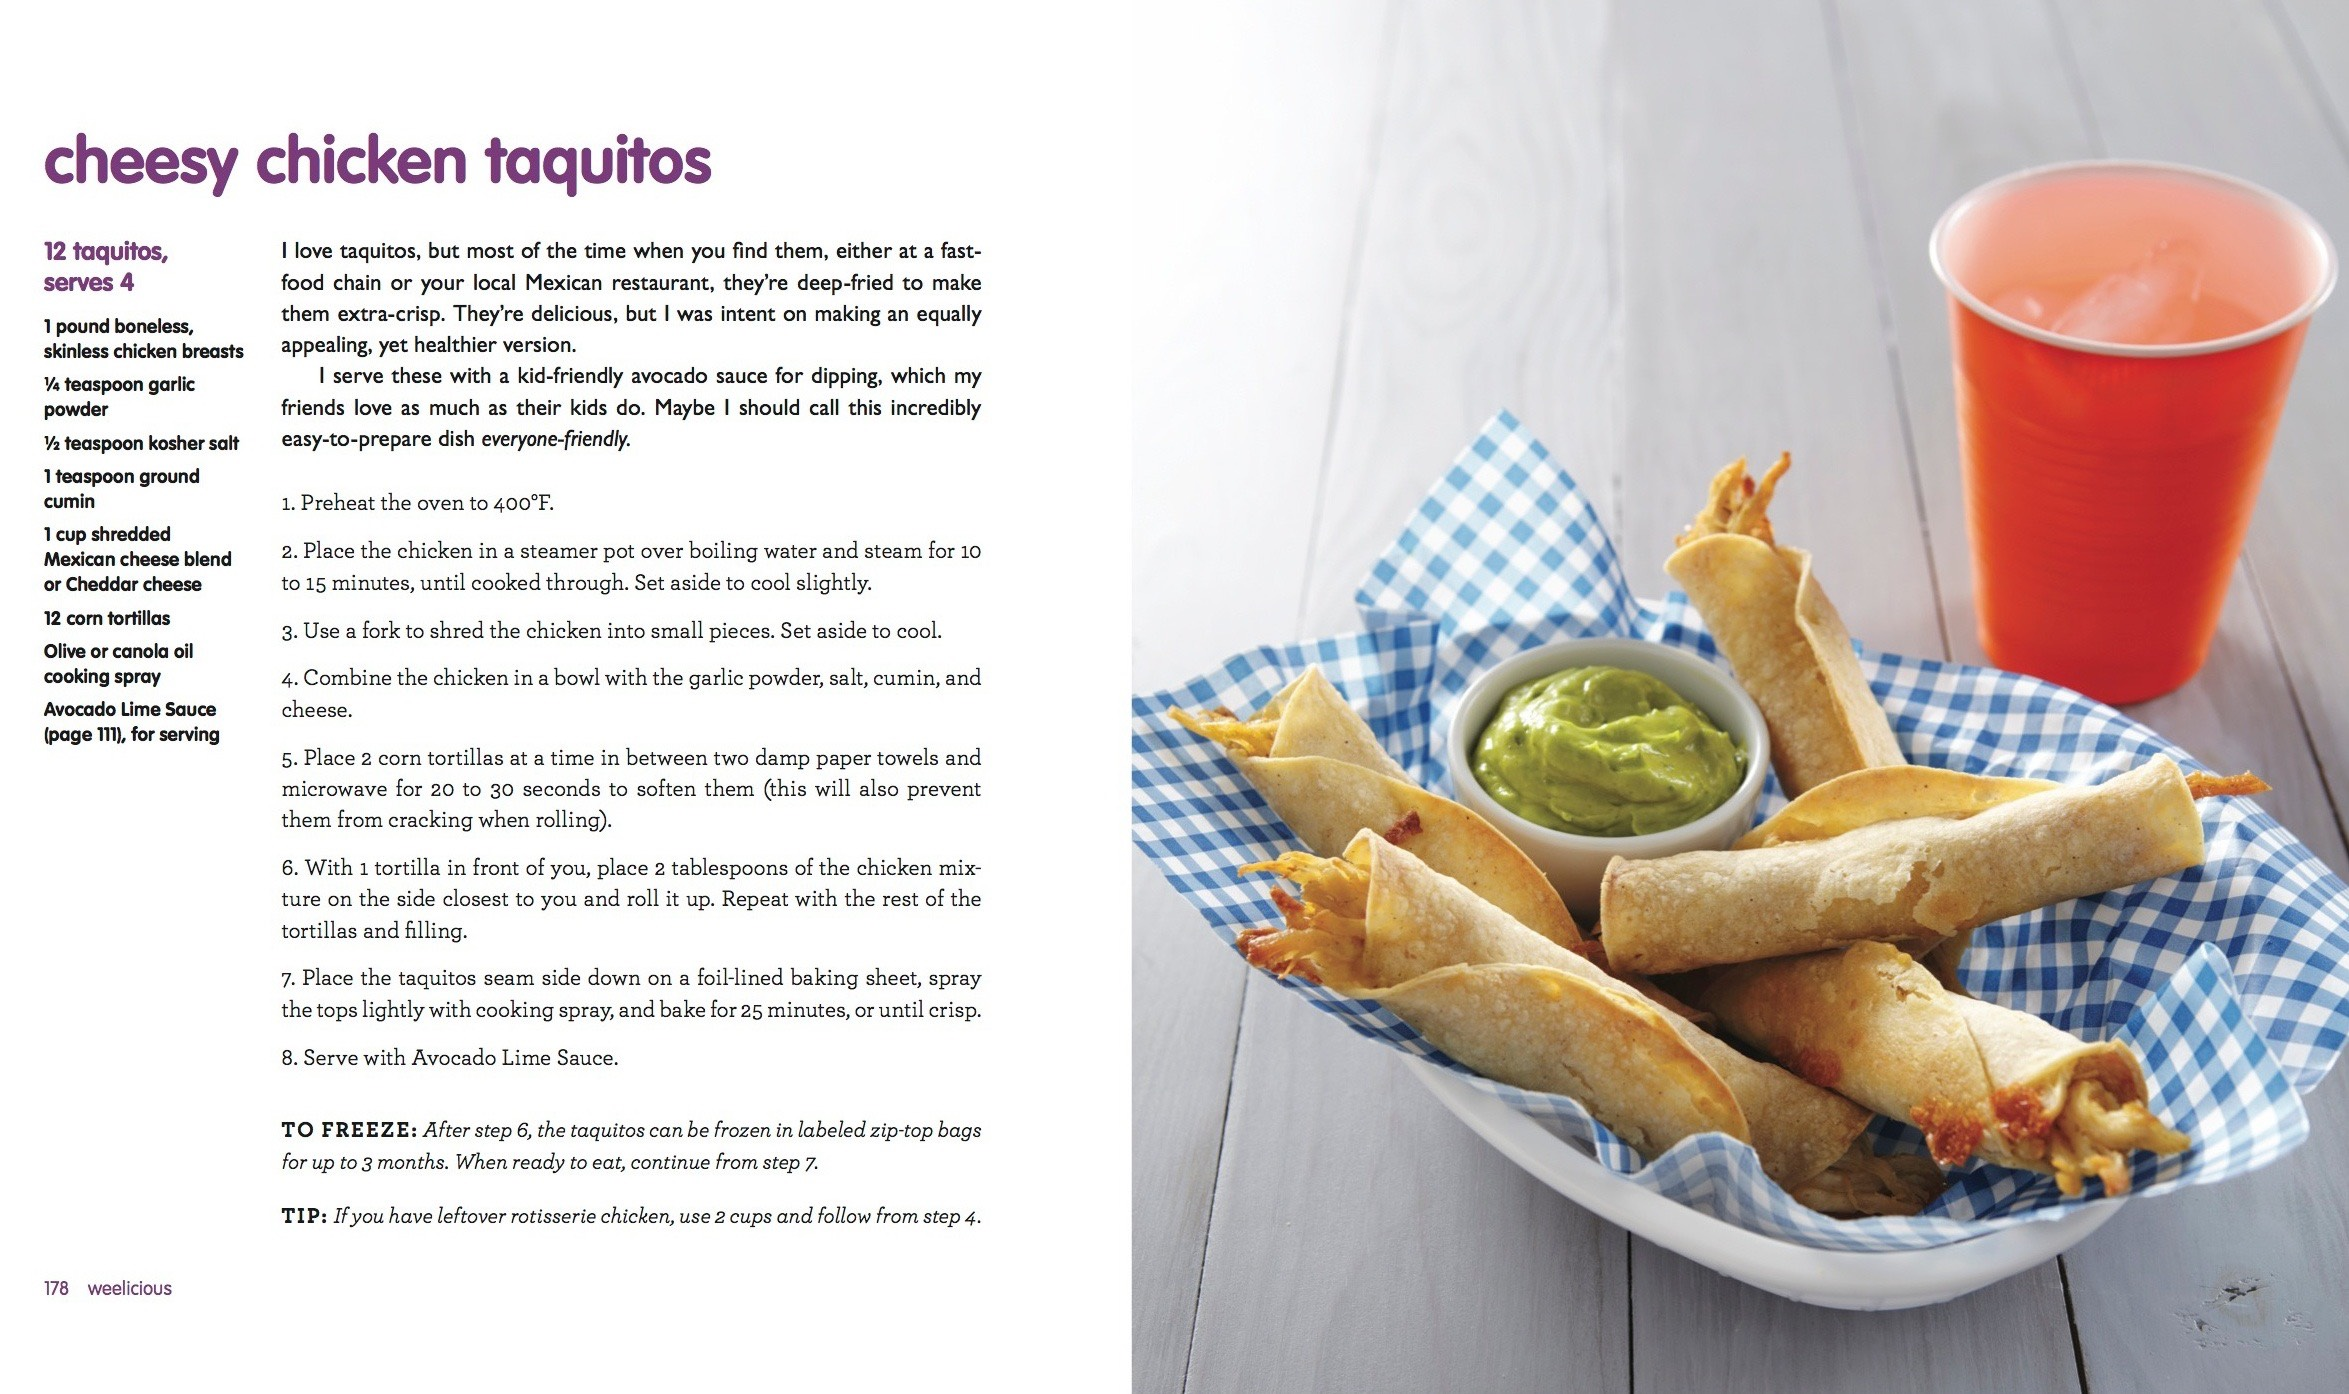 Cheesy Chicken Taquitos by Weelicious